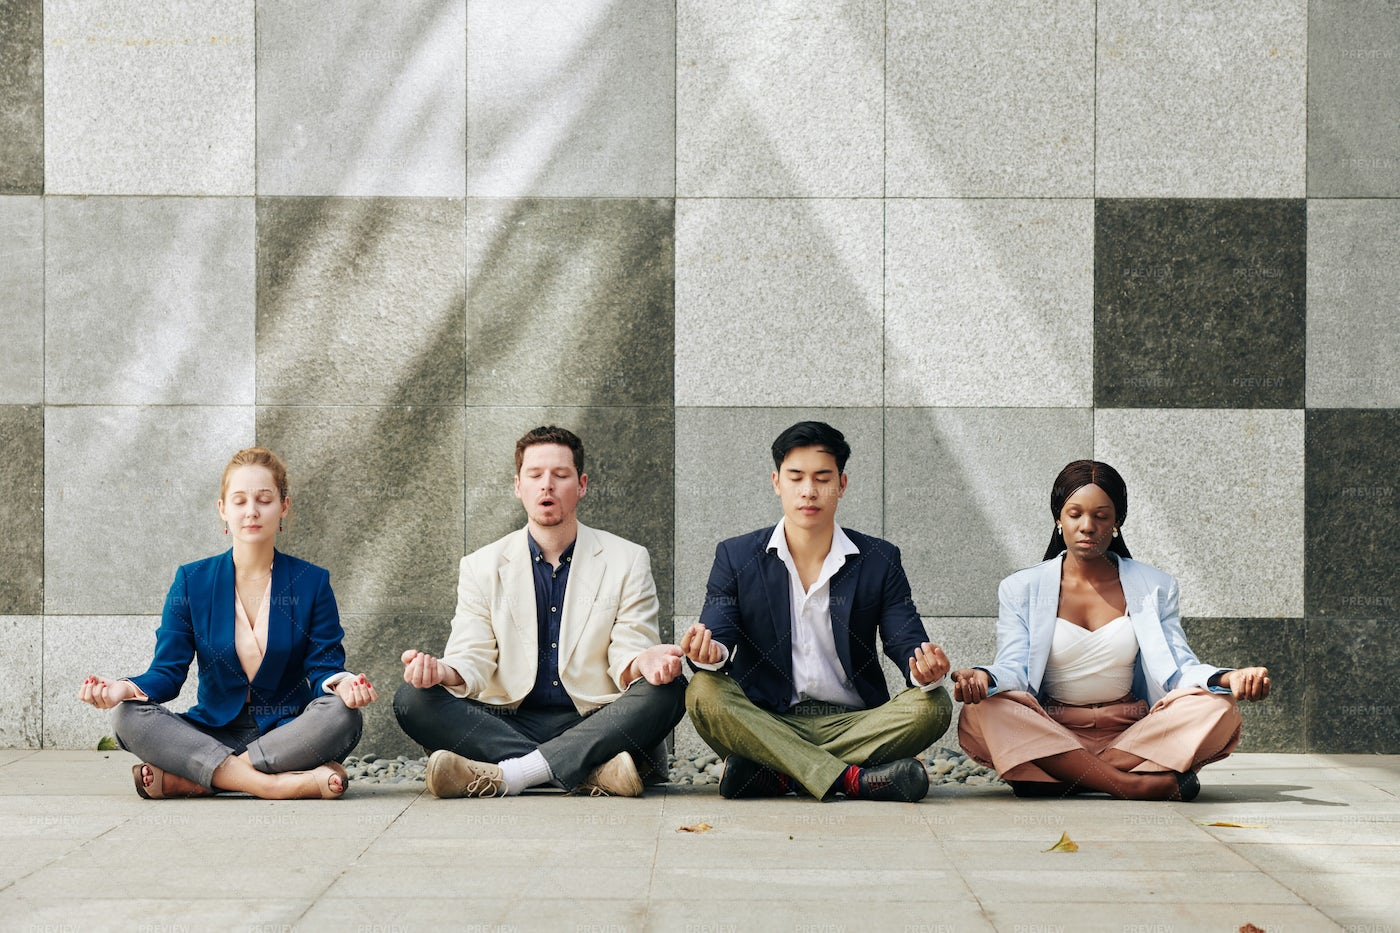 Business People Meditating Together: Stock Photos